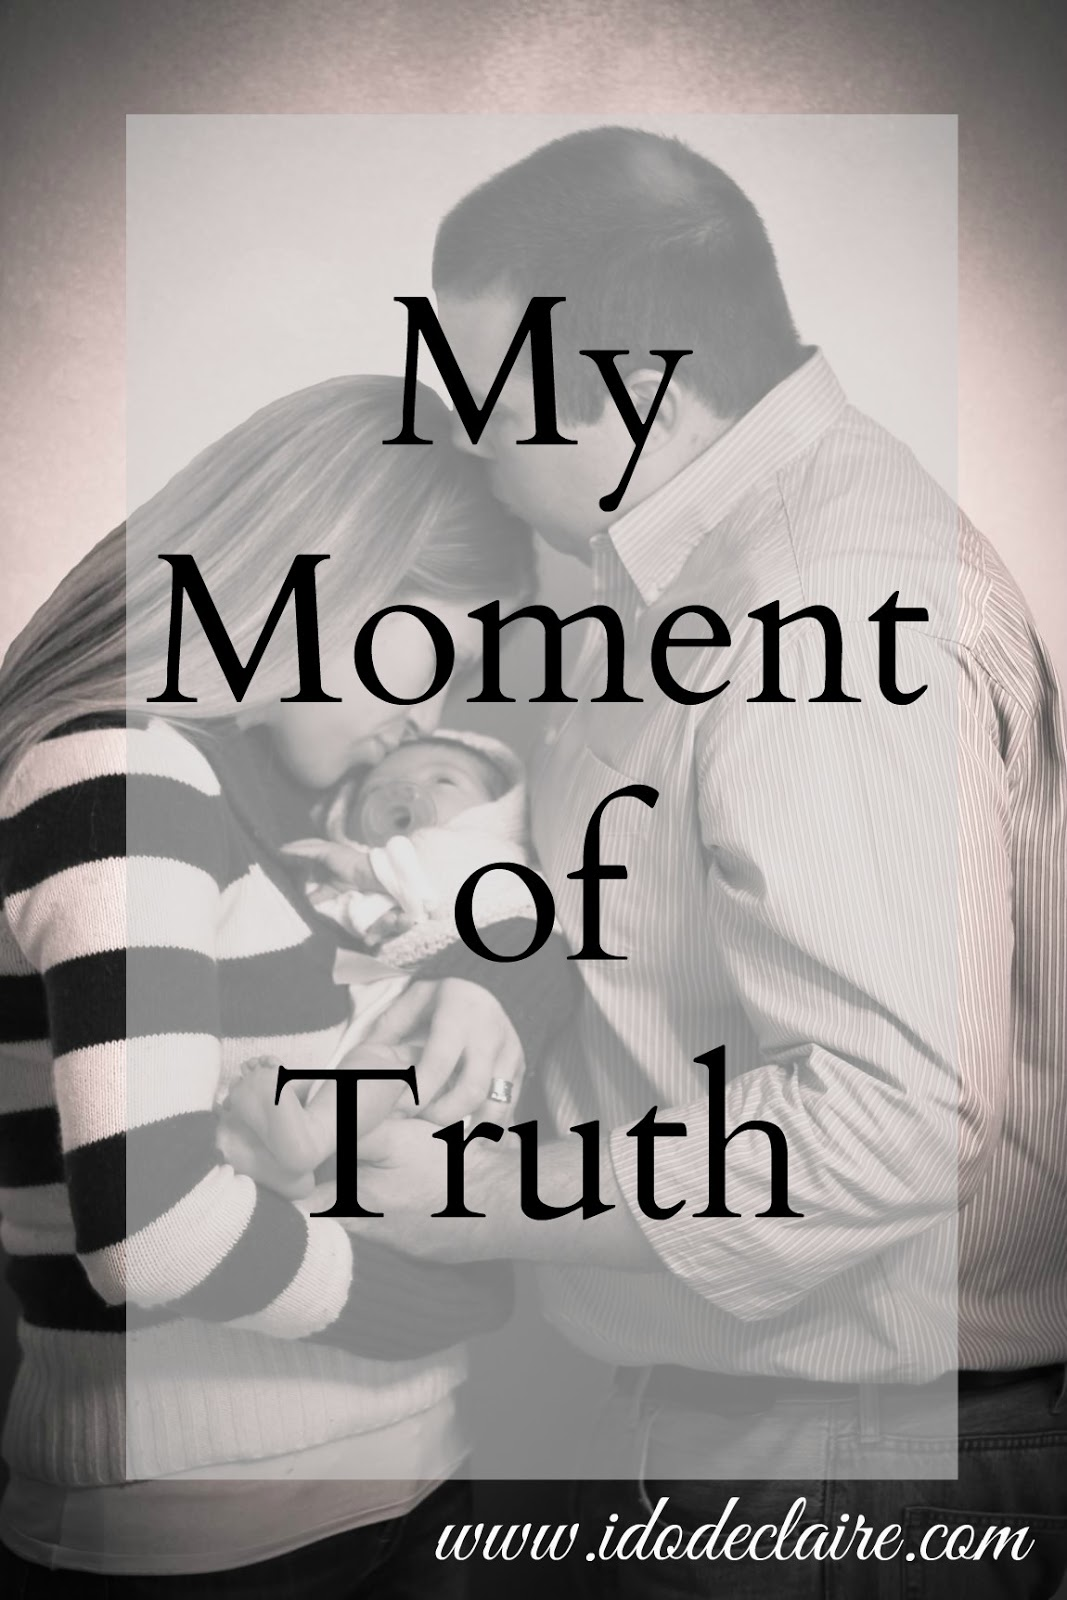 my moment of truth, e.p.t., pregnancy test, secondary infertility,